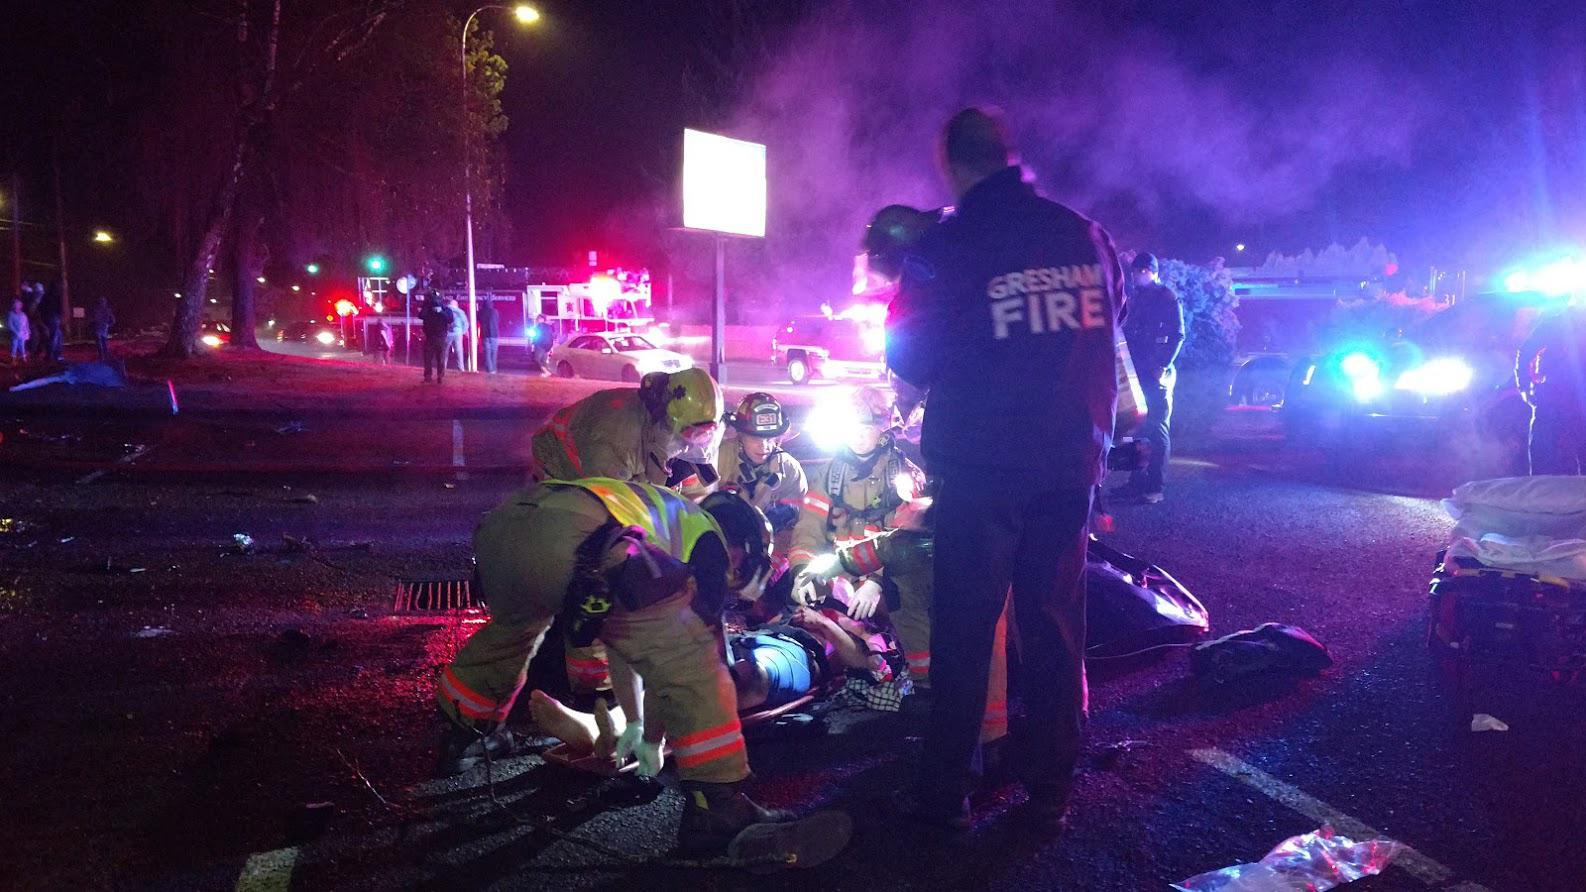 Firefighters and paramedics treat a person injured in a rollover crash near Southeast 182nd Avenue and Yamhill Street on Monday night, Dec. 23, 2019. (Photo: Gresham Fire Department)